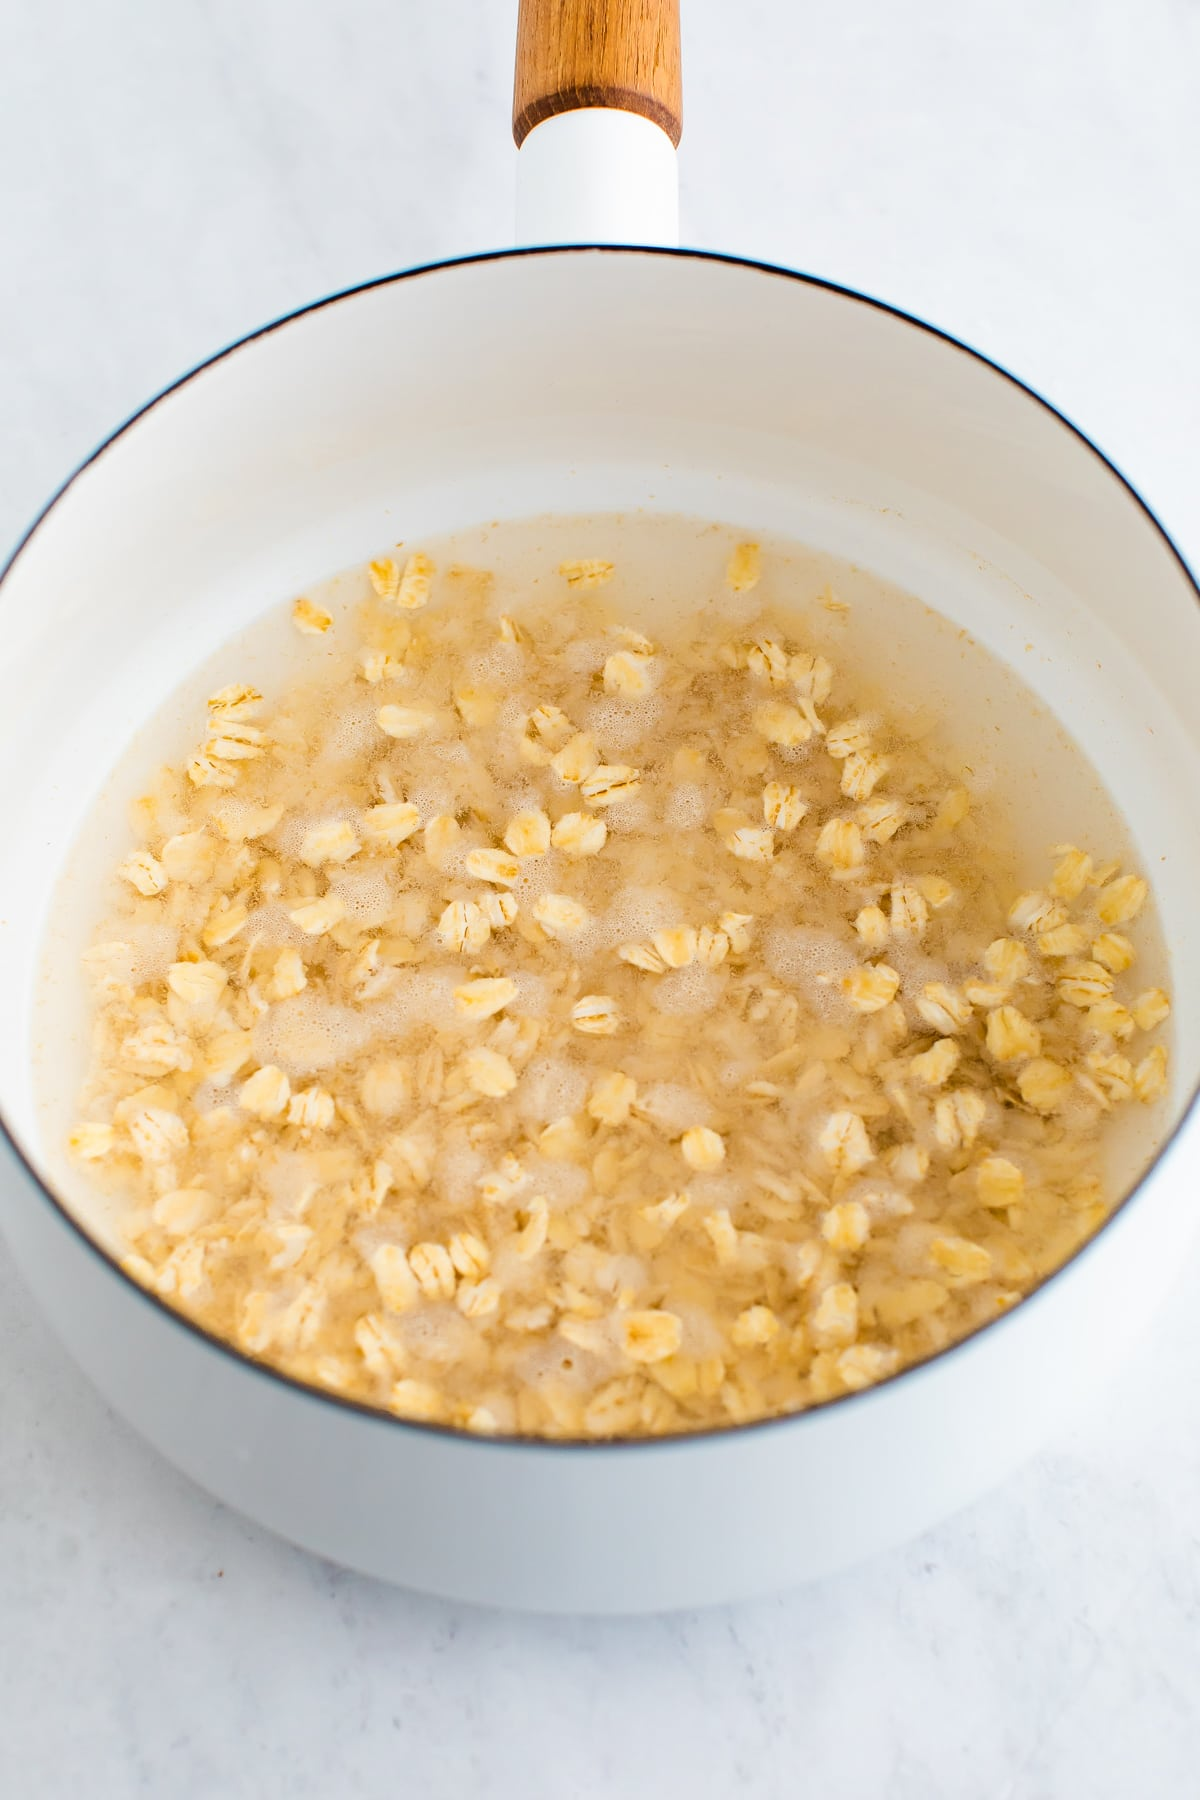 Pot with oats and water.